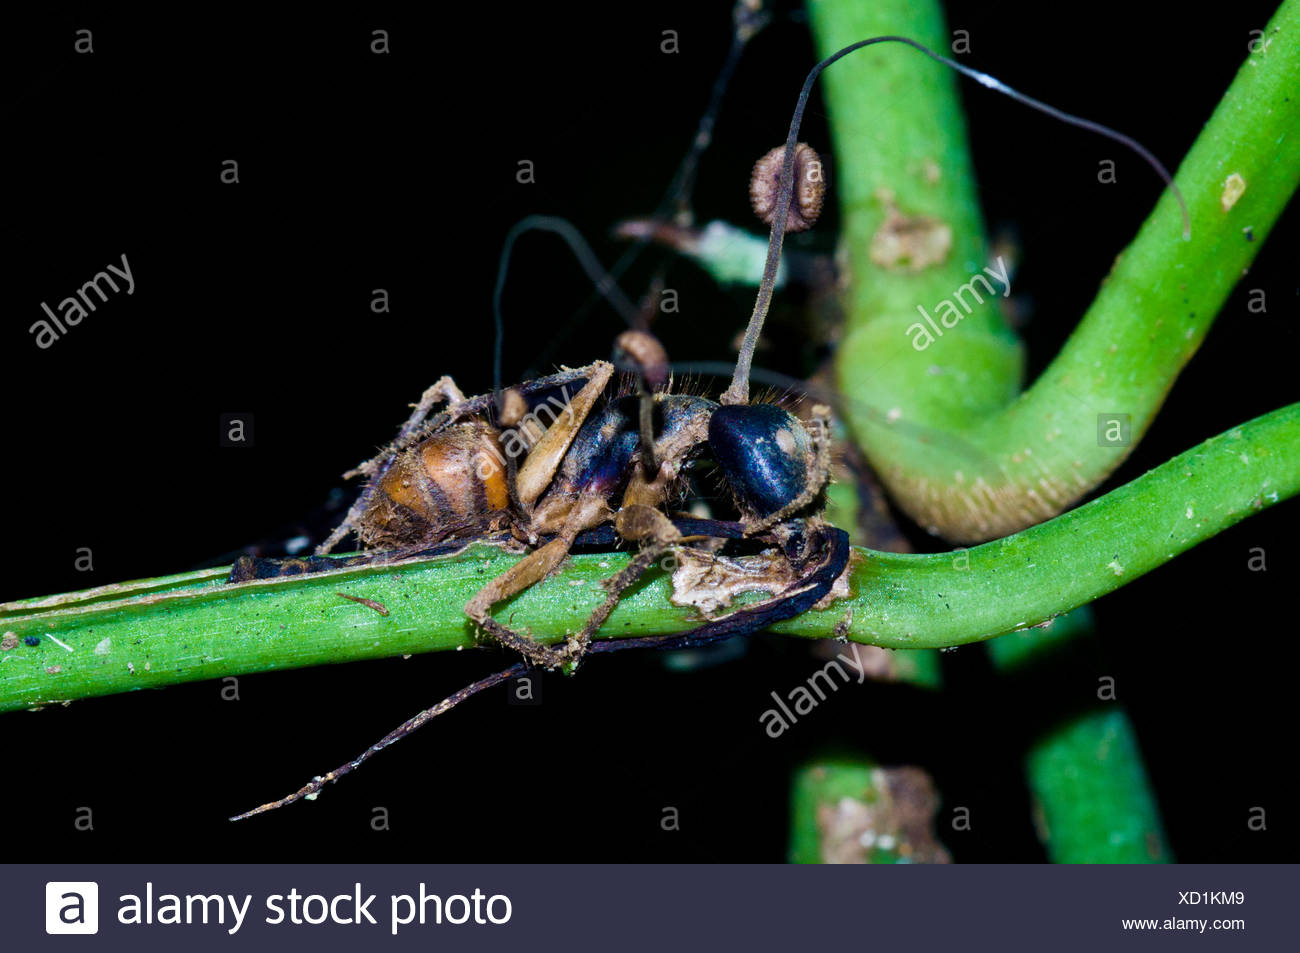 The fruiting bodies and spores of a fungi emerging from the body of a dead bee. - Stock Image